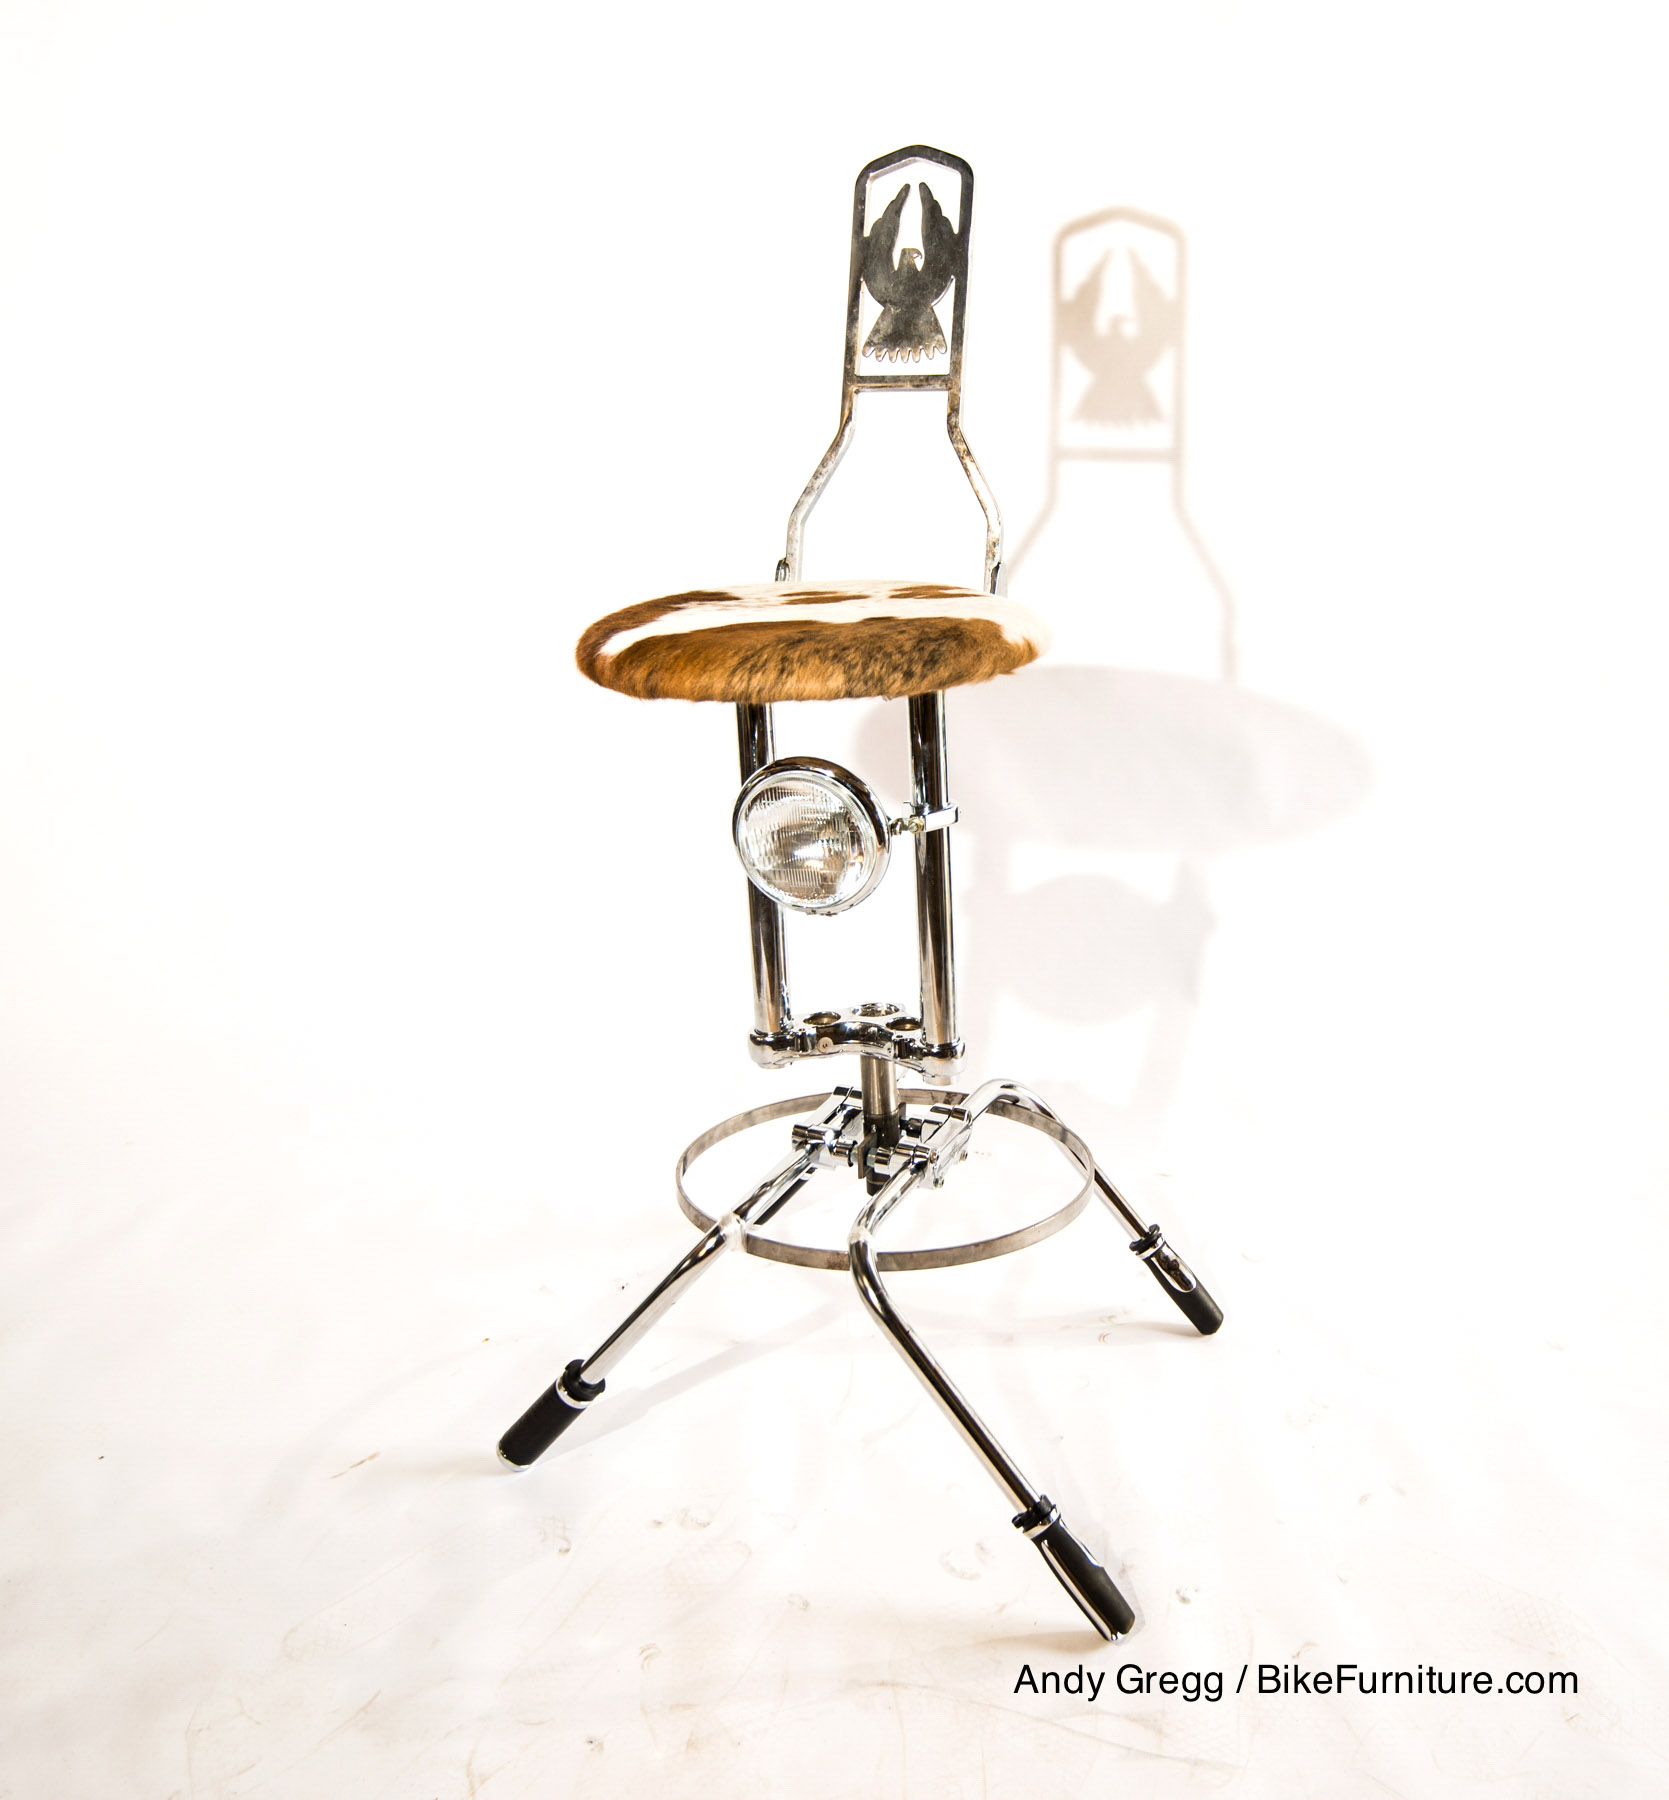 Moto bar stool with an actual motorcycle sissybar as a back rest. There are many styles, including padded. Imagine shorter, with an actual motorcycle seat, and without foot ring